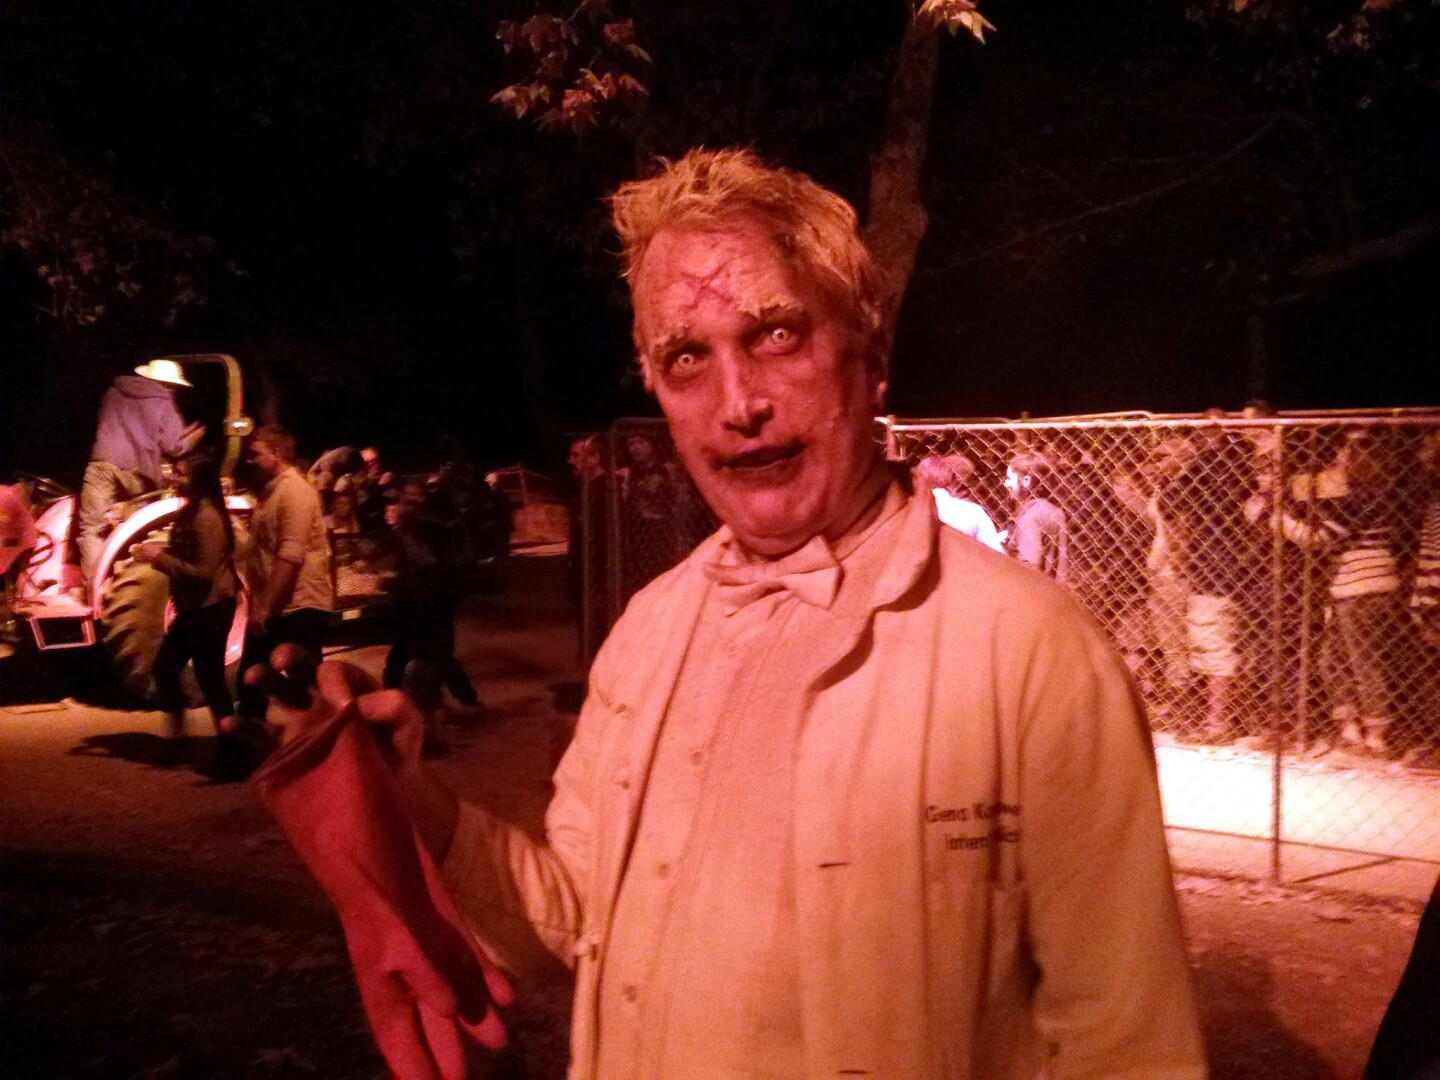 Los Angeles Haunted Hayride l Photo: Cory Doctorow, some rights reserved